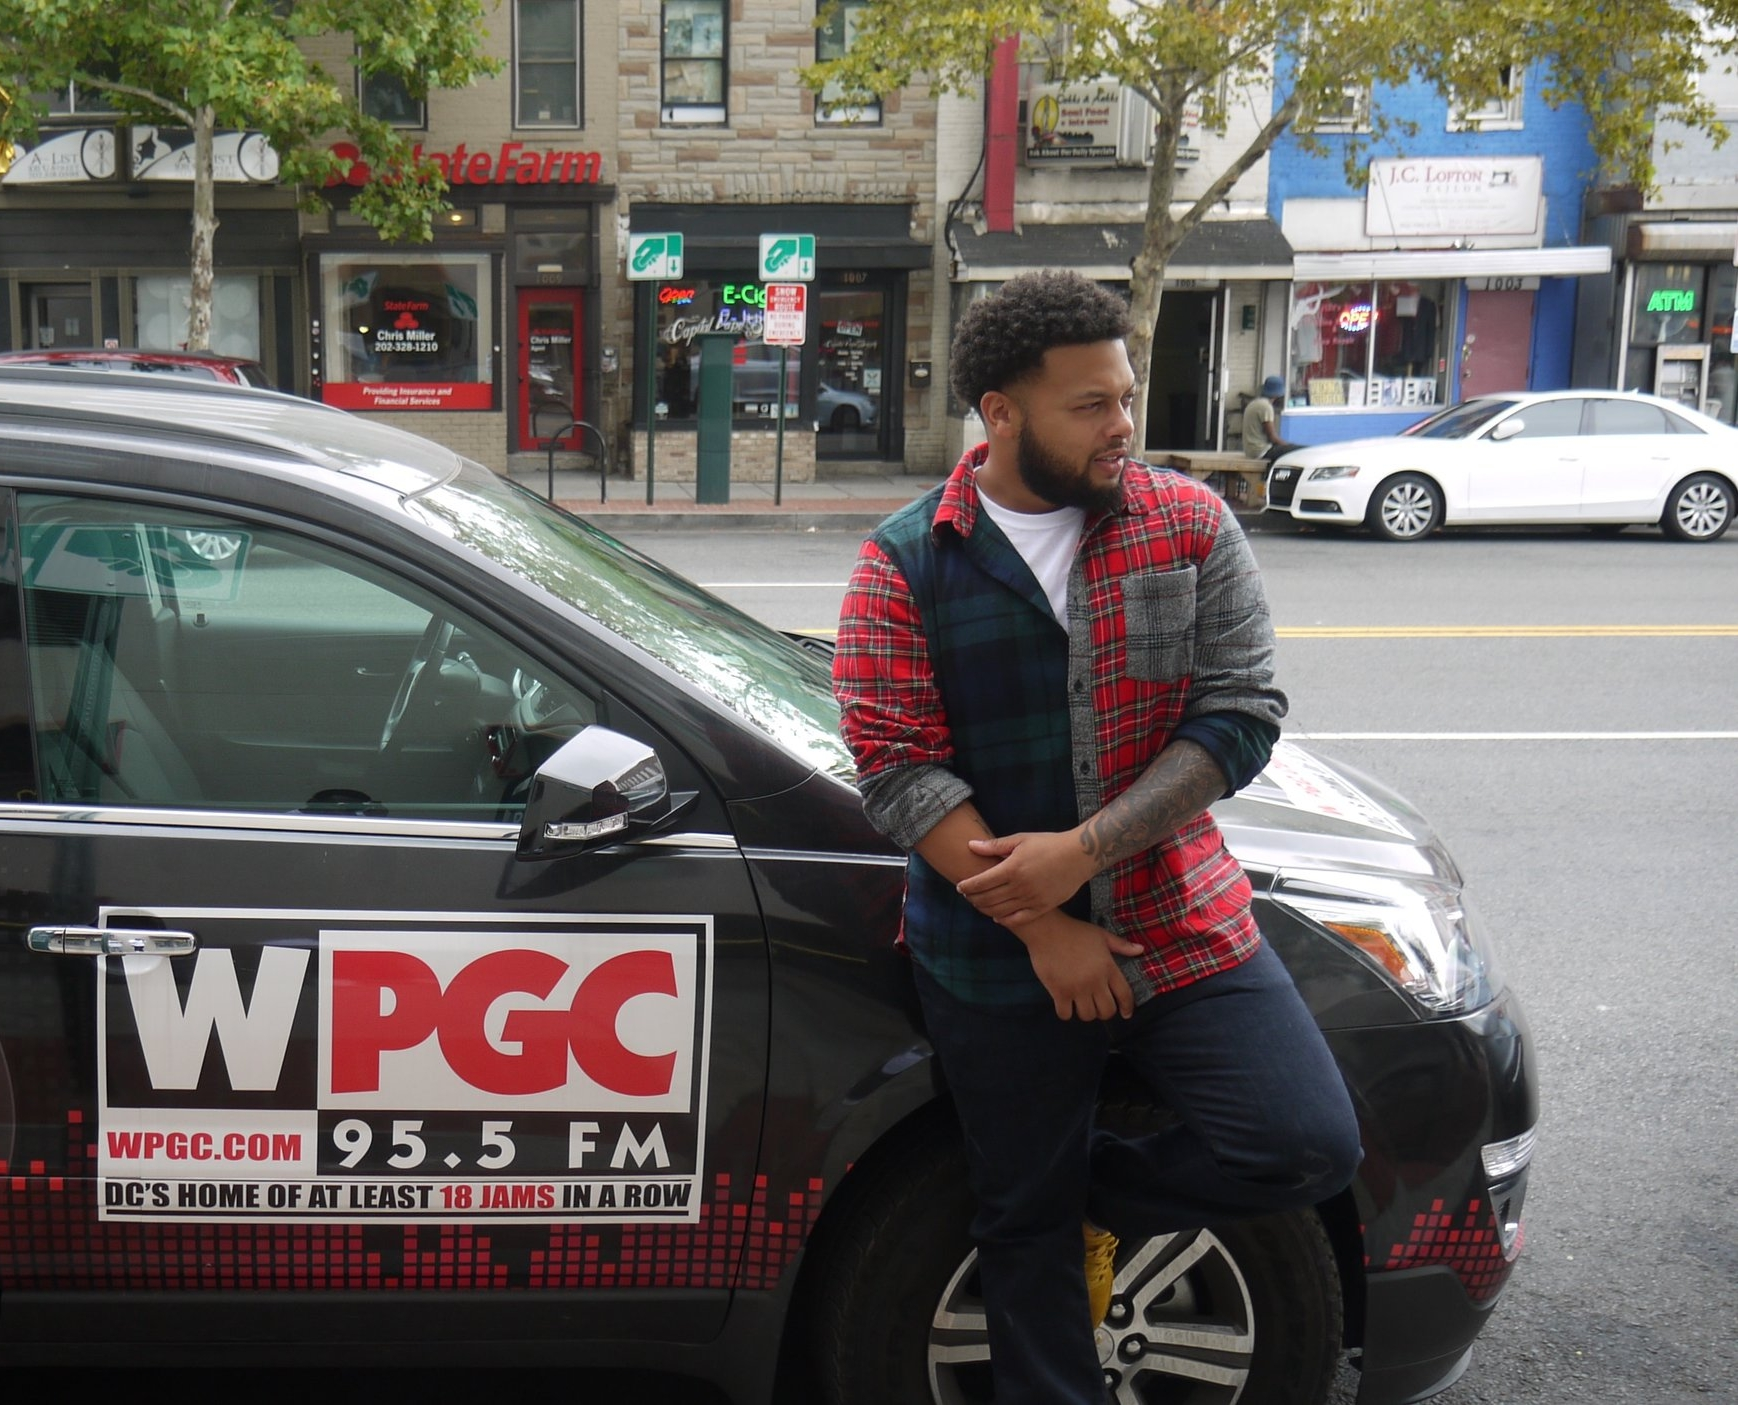 ChrisTheCooker on DC's WPGC